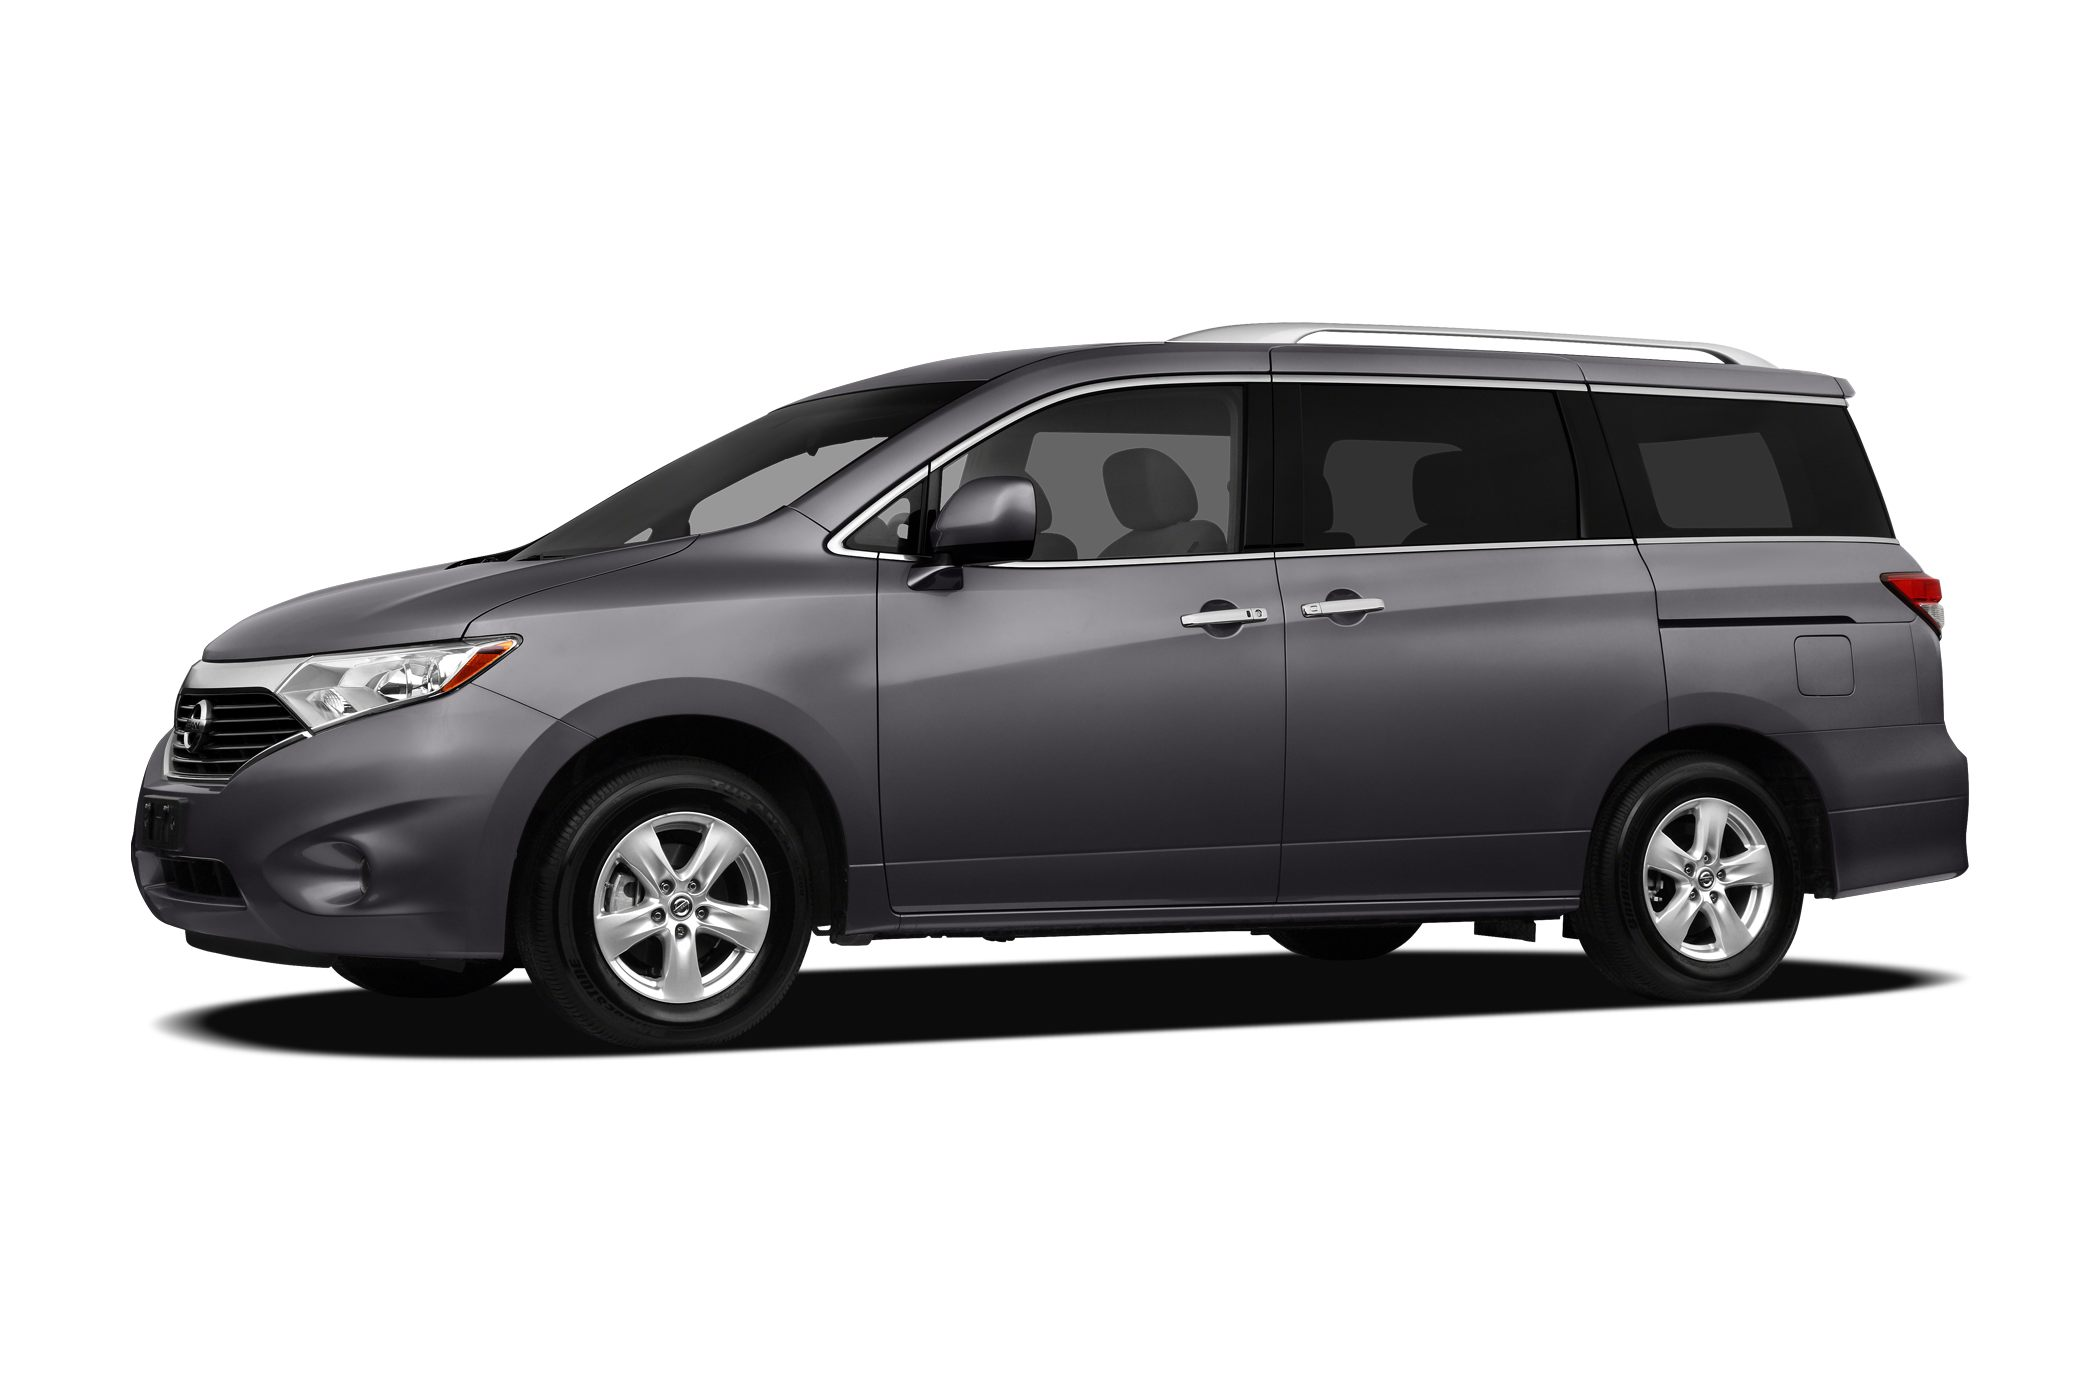 2011 Nissan Quest S Minivan for sale in Burleson for $16,900 with 52,524 miles.